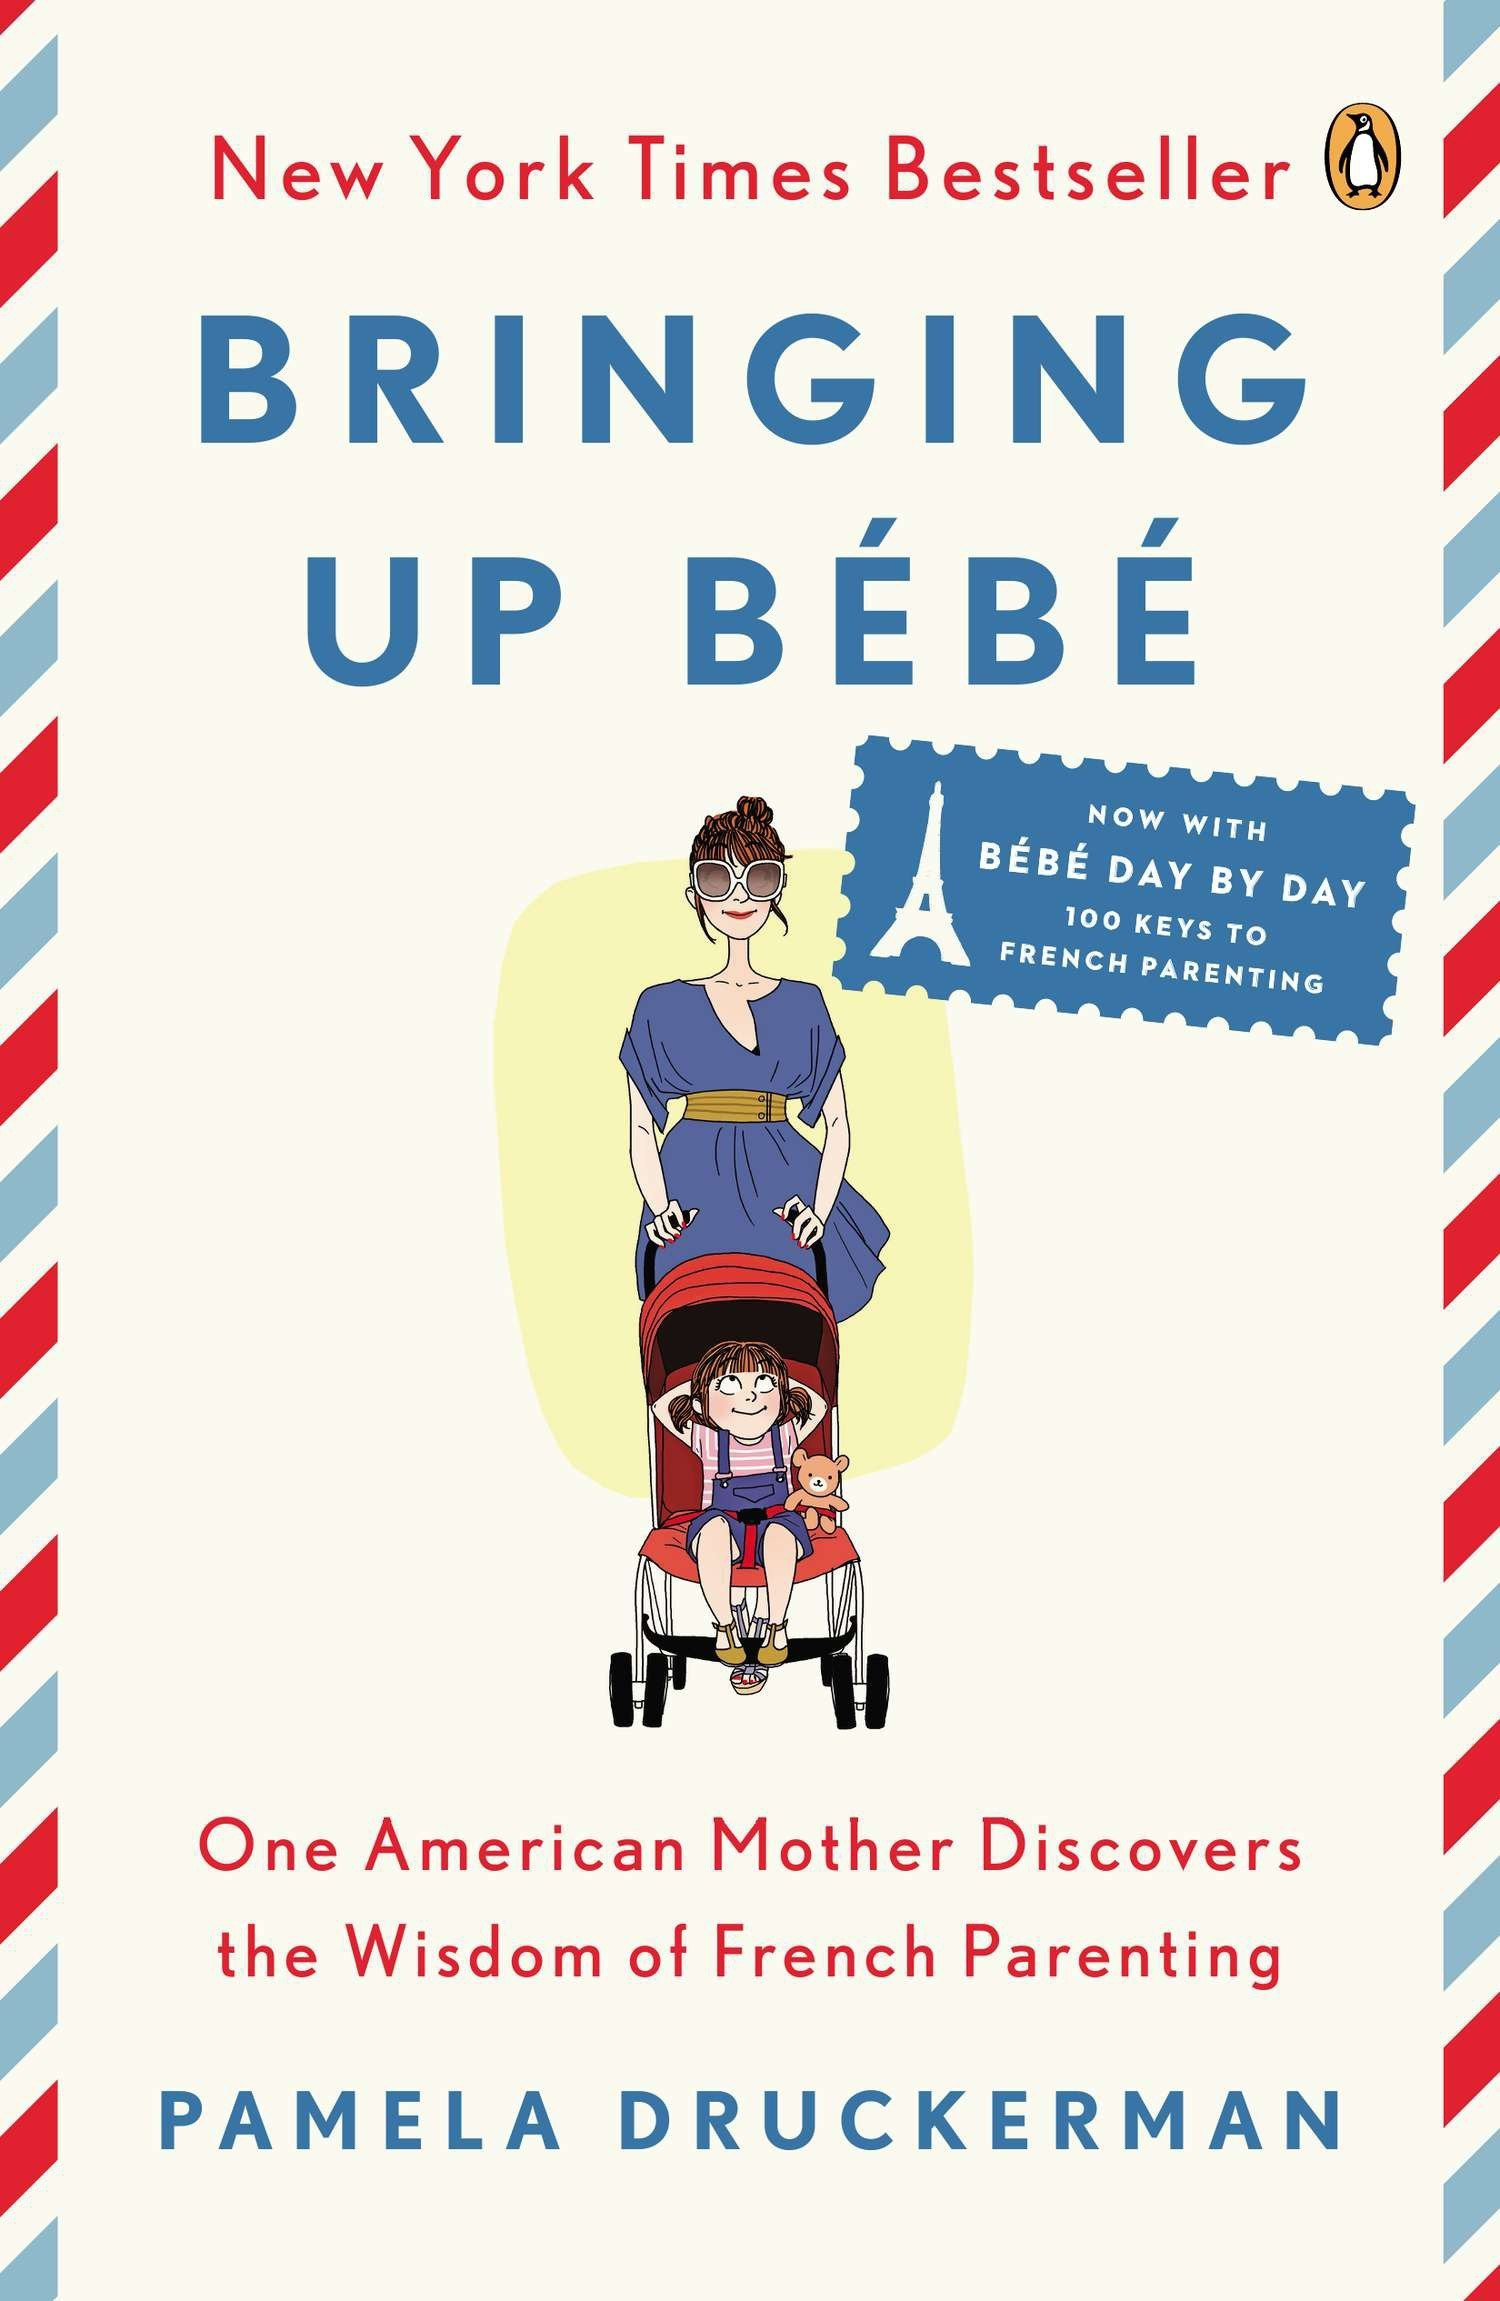 Bringing Up Bébé: One American Mother Discovers the Wisdom of French Parenting (now with Bébé Day by Day: 100 Keys to French Parenting) by Penguin Books